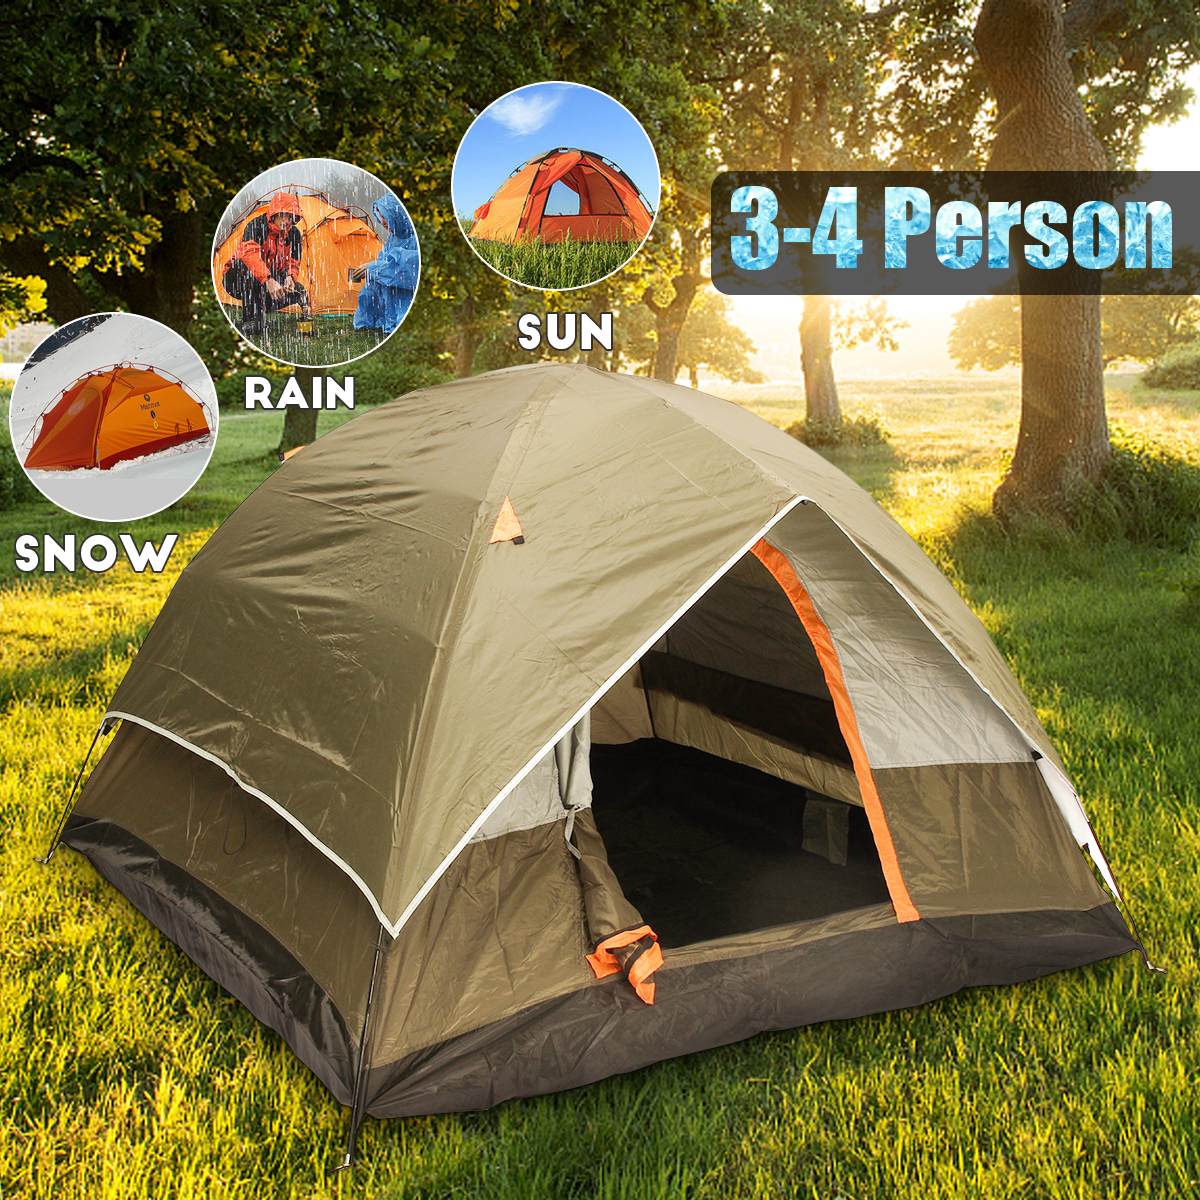 3-4 Person Windbreak Camping Tent Dual Layer Waterproof Open Anti UV Tourist Tents For Outdoor Hiking Beach Travel3-4 Person Windbreak Camping Tent Dual Layer Waterproof Open Anti UV Tourist Tents For Outdoor Hiking Beach Travel